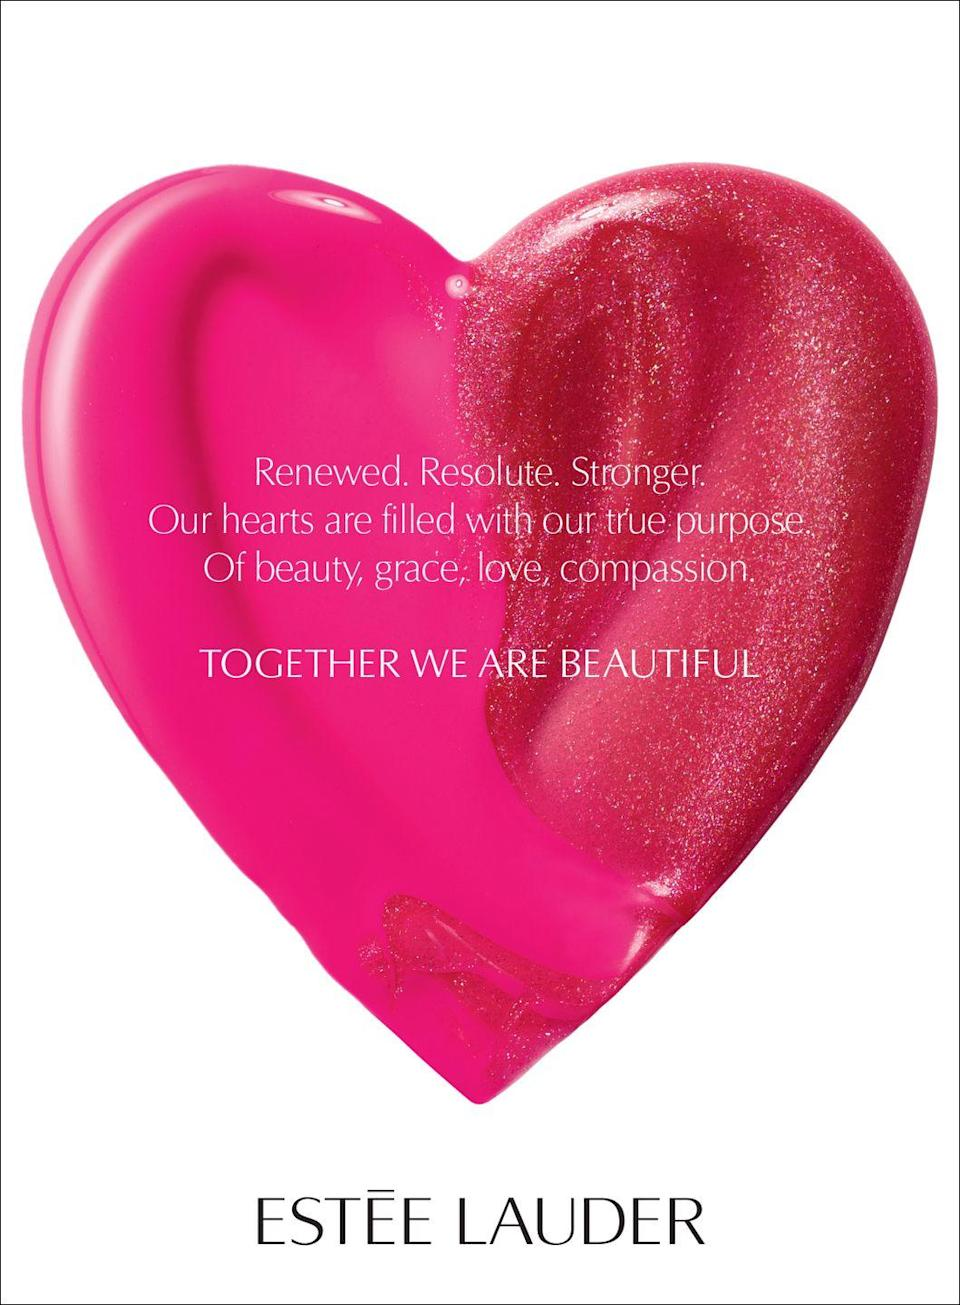 <p>Renewed. Resolute. Stronger. Our hearts are filled with our true purpose. Of beauty, grace, love, compassion.</p><p>Together we are beautiful. </p>